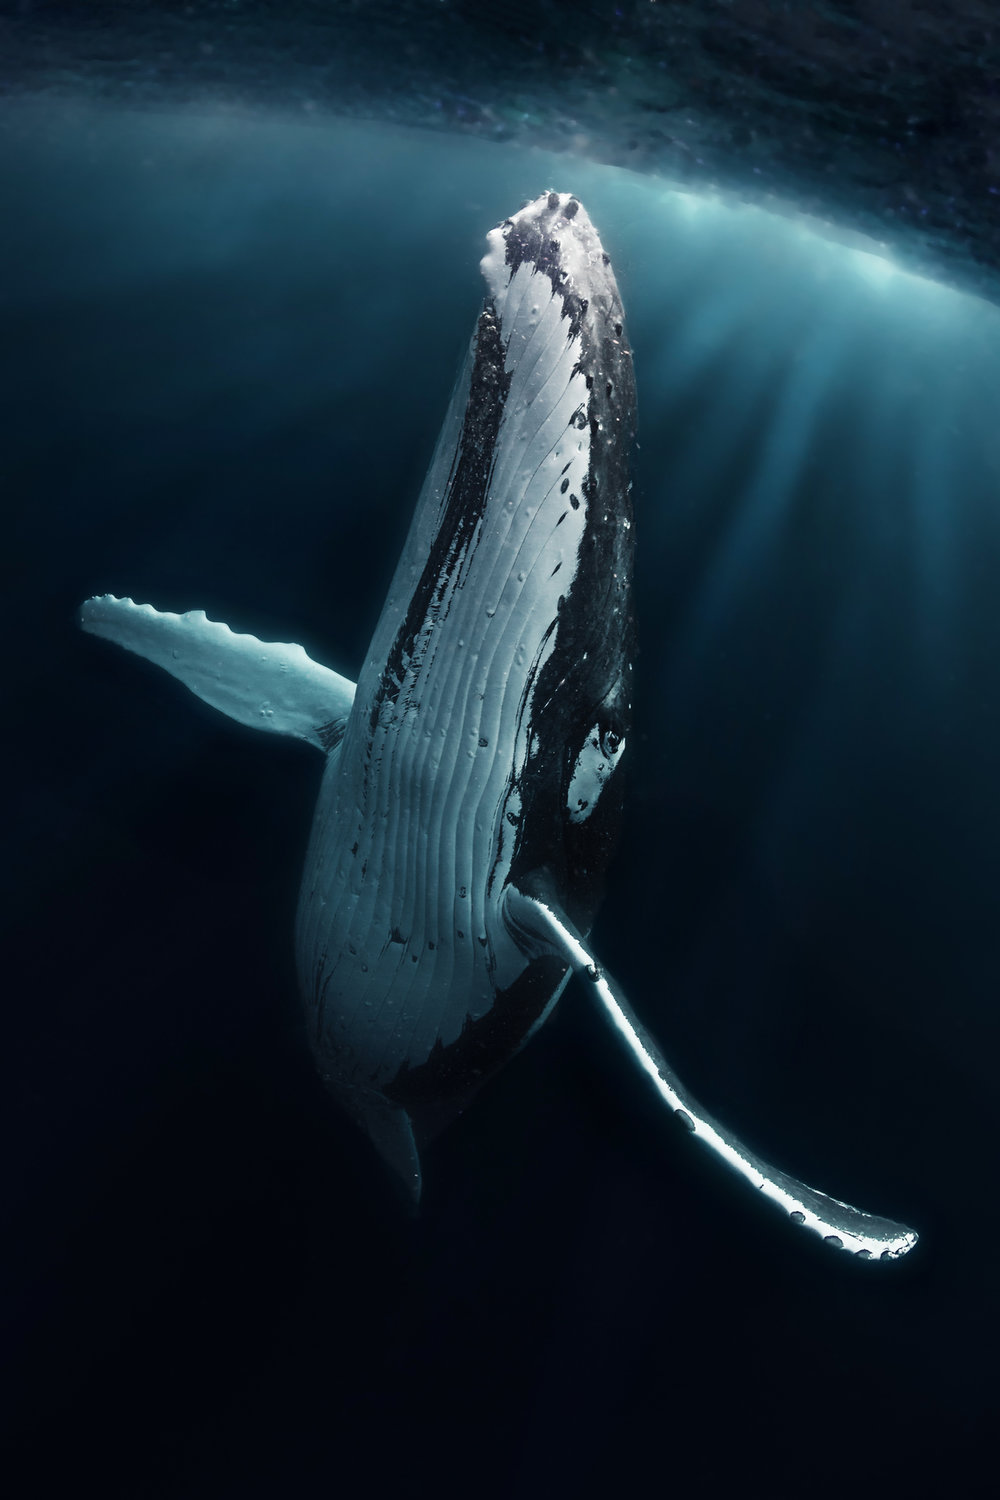 second: Grant Thomas, An Elegant humpback whale poses for the camera